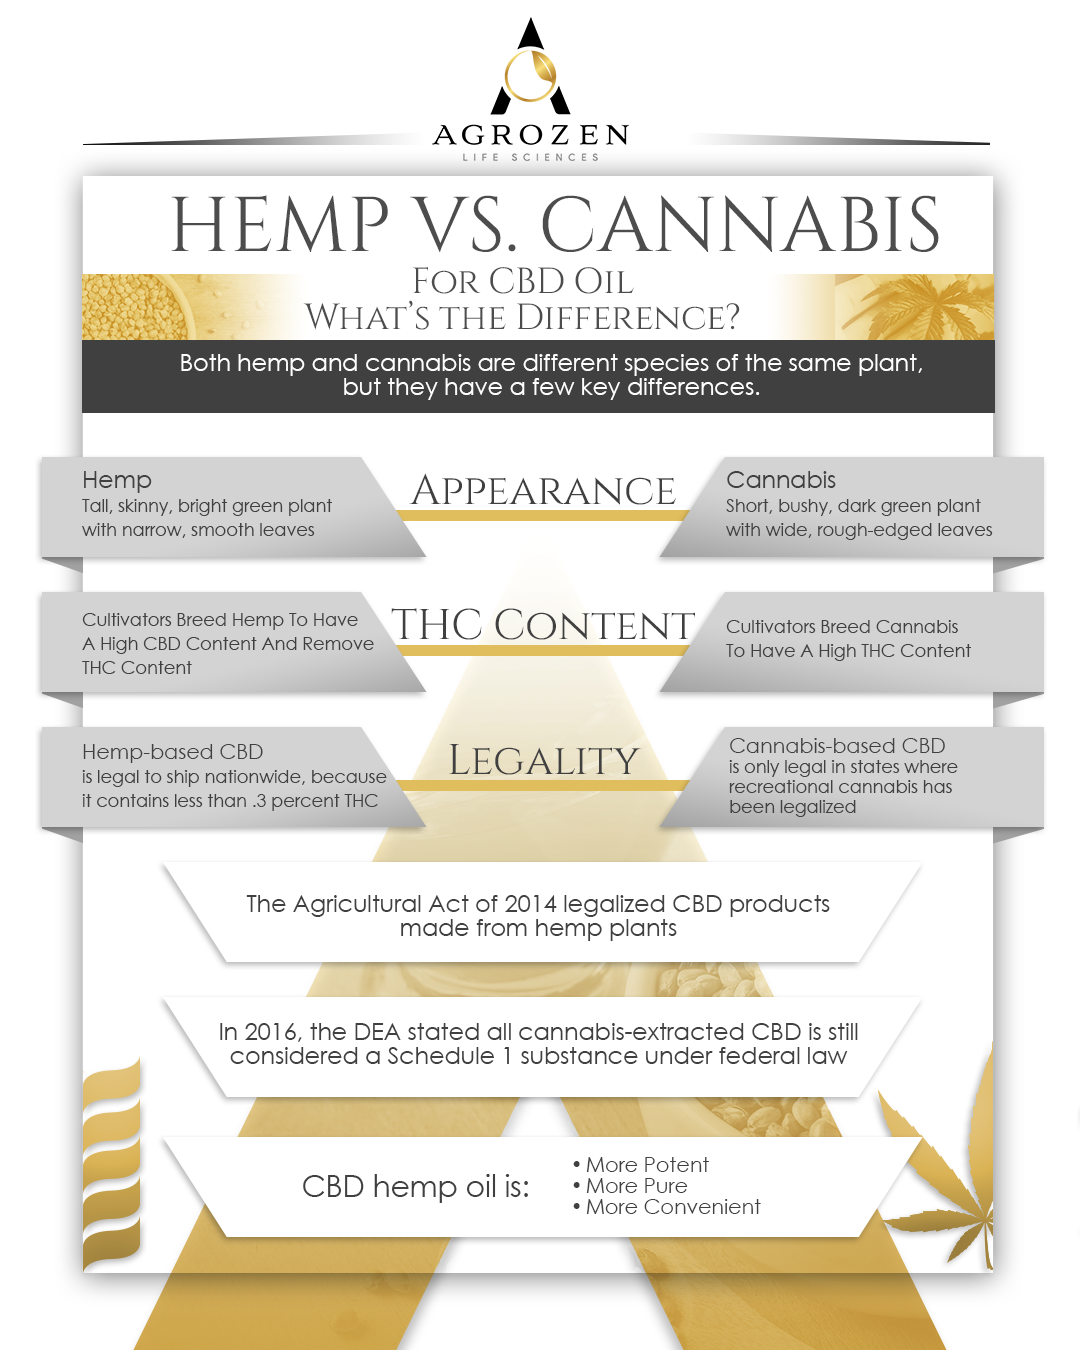 Hemp vs. Cannabis